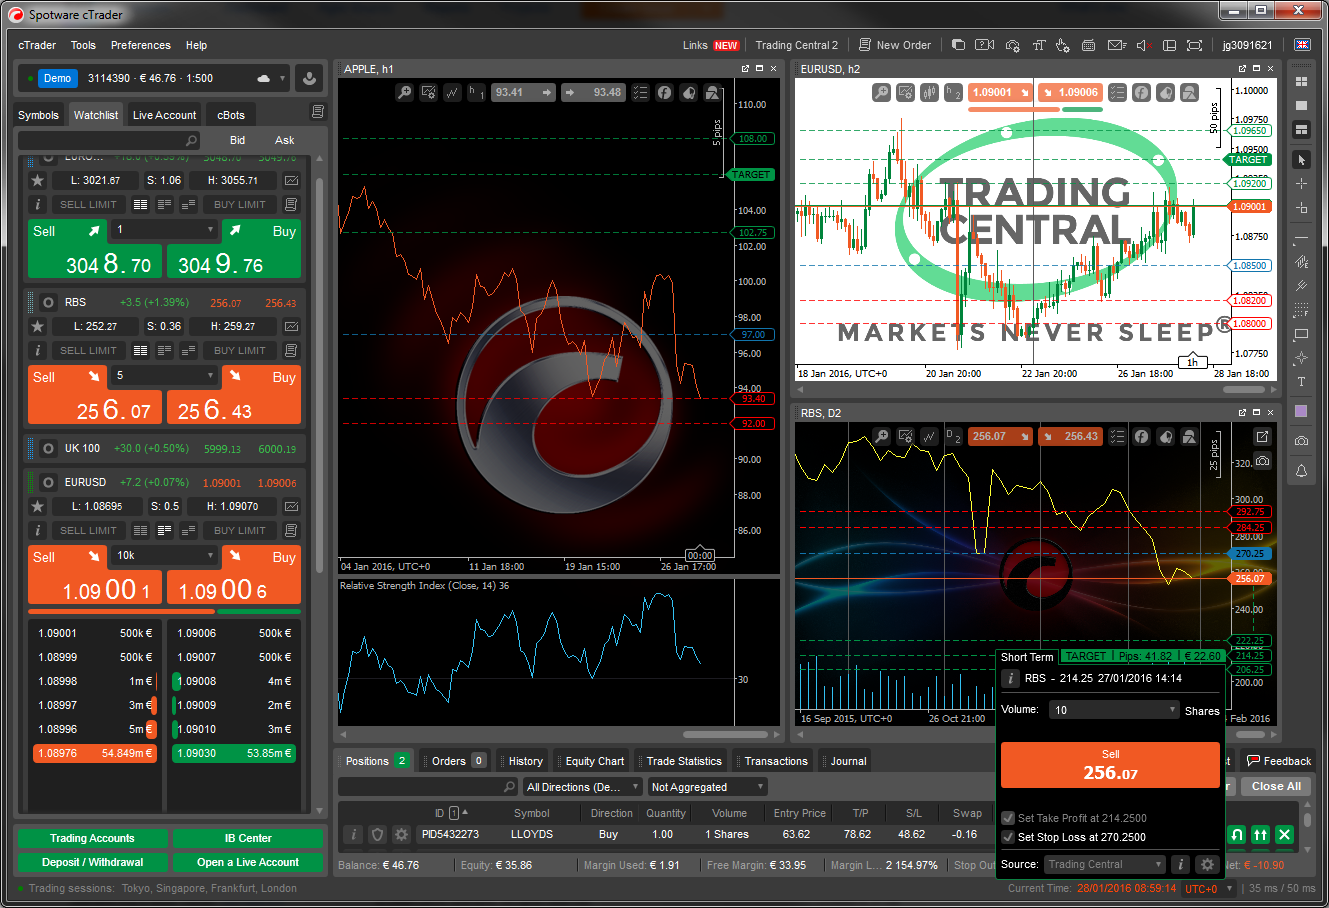 Trading Central's module within the cTrader trading platform